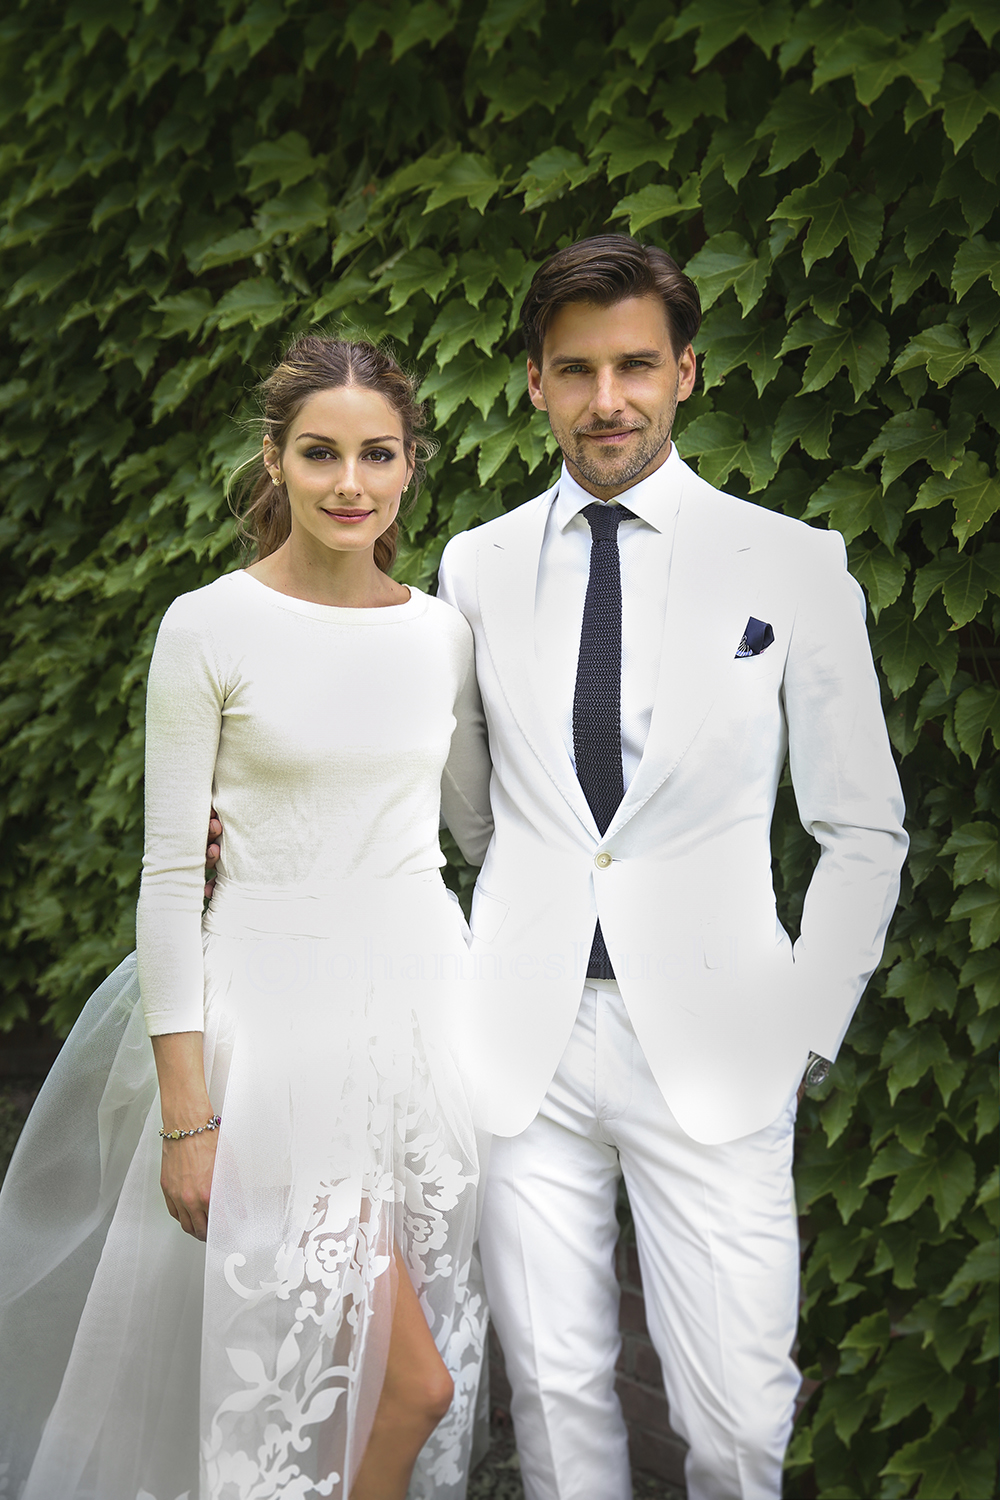 Olivia Palermo and Johannes Huebl Civil Ceremony | Inspired by Olivia Palermo's Wedding Look